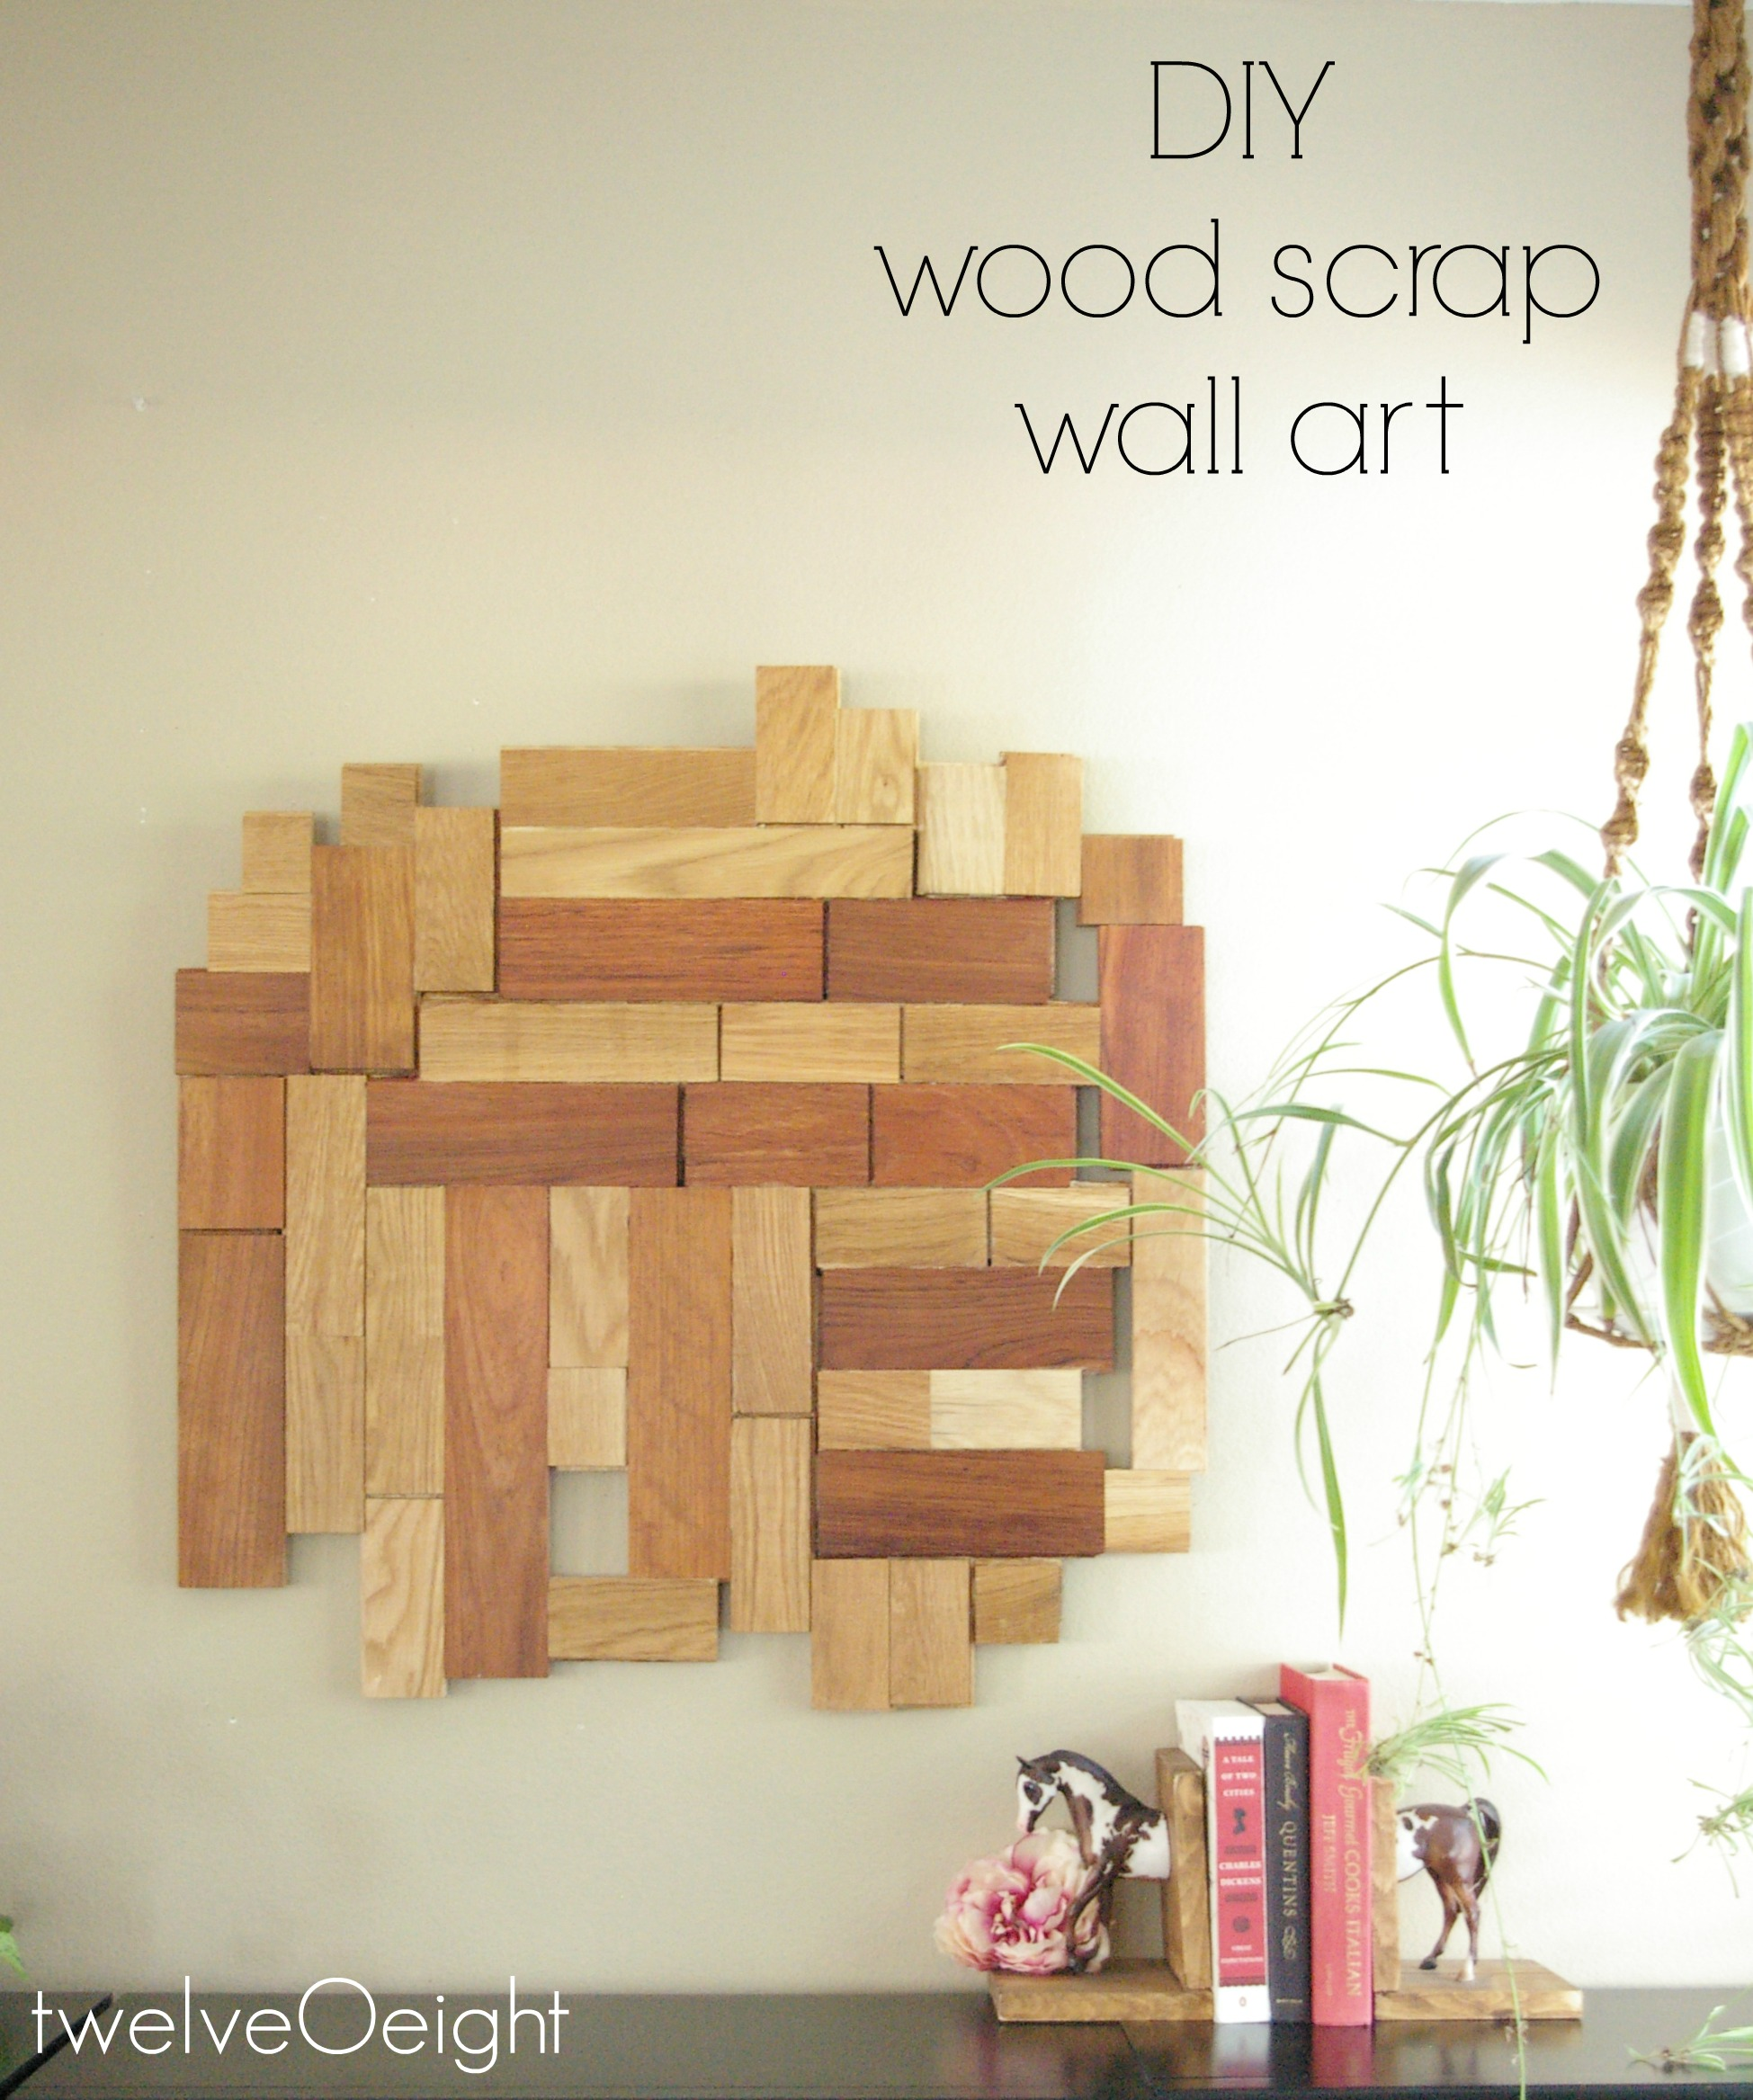 Wood Scrap Wall Art Project #diy #wood #upcycle #recycle #wallart #